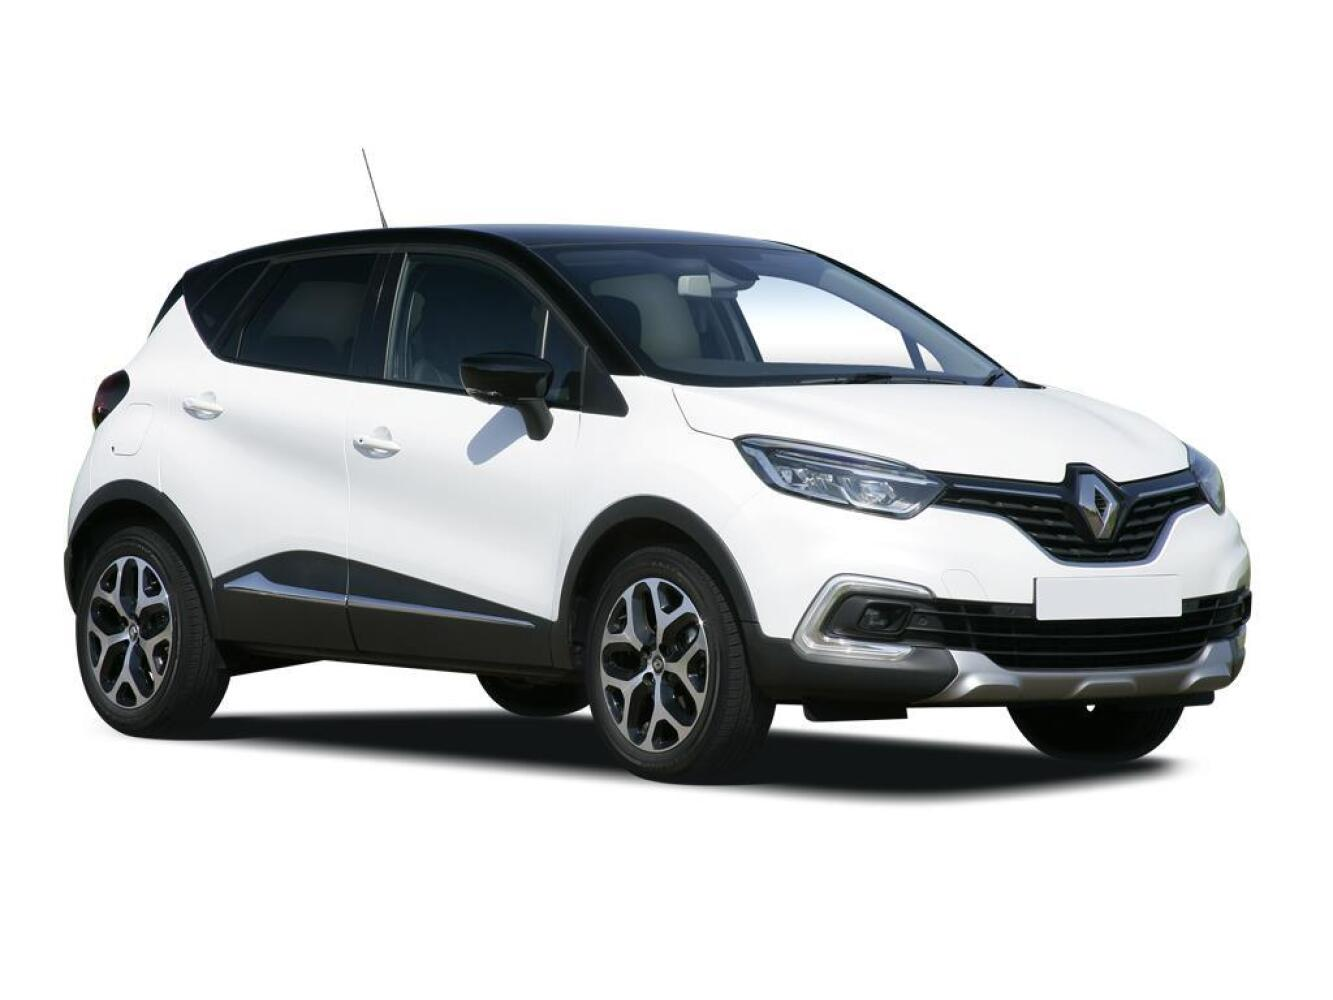 new renault captur 1 3 tce 150 gt line 5dr edc petrol hatchback for sale bristol street. Black Bedroom Furniture Sets. Home Design Ideas